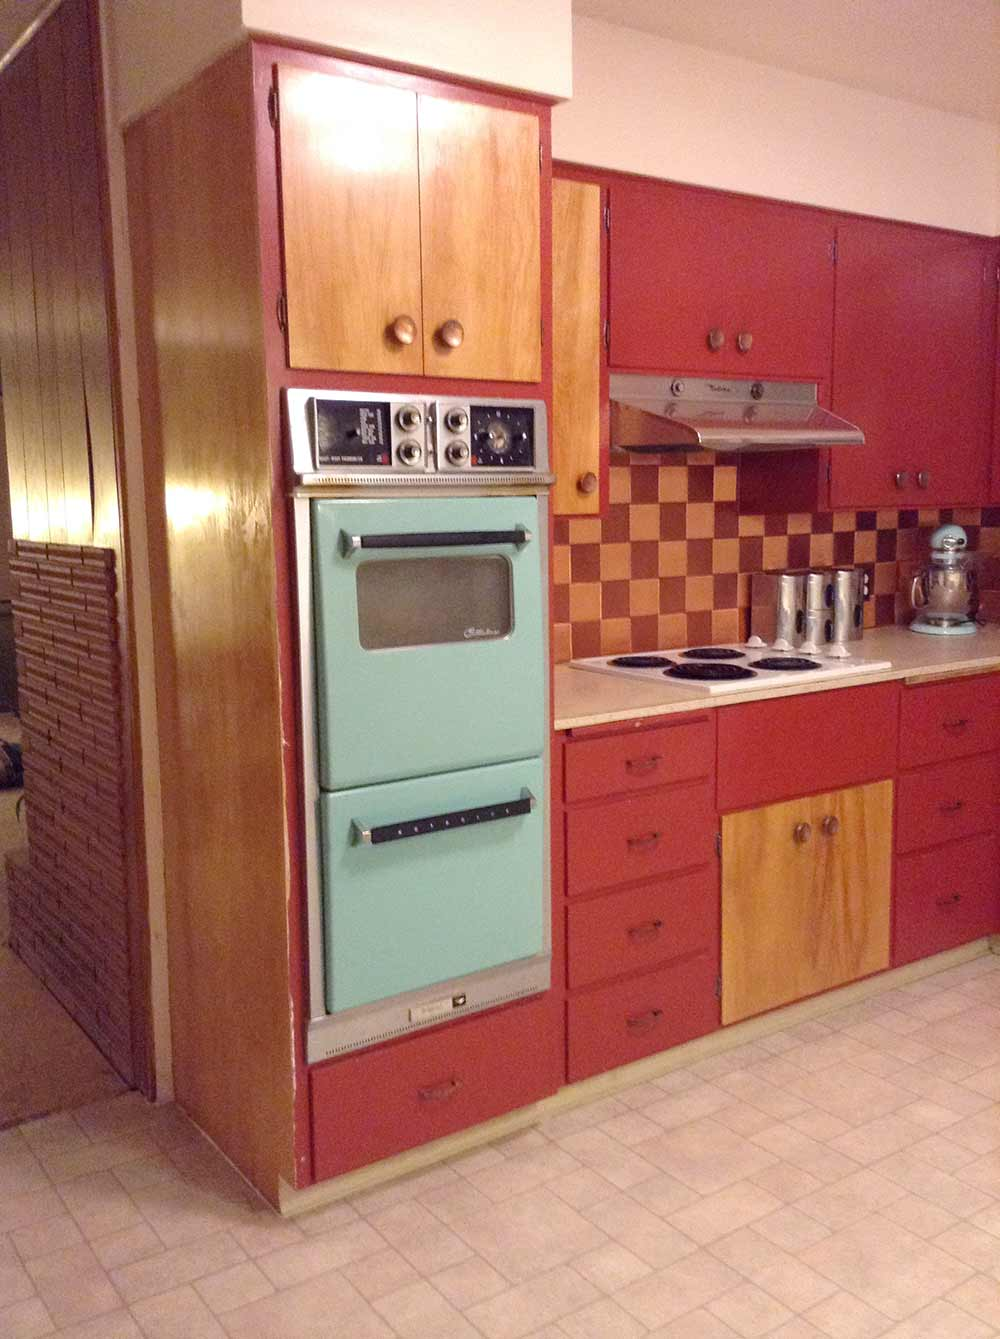 Flooring and countertops for Shannan's 1950s kitchen - Retro ...